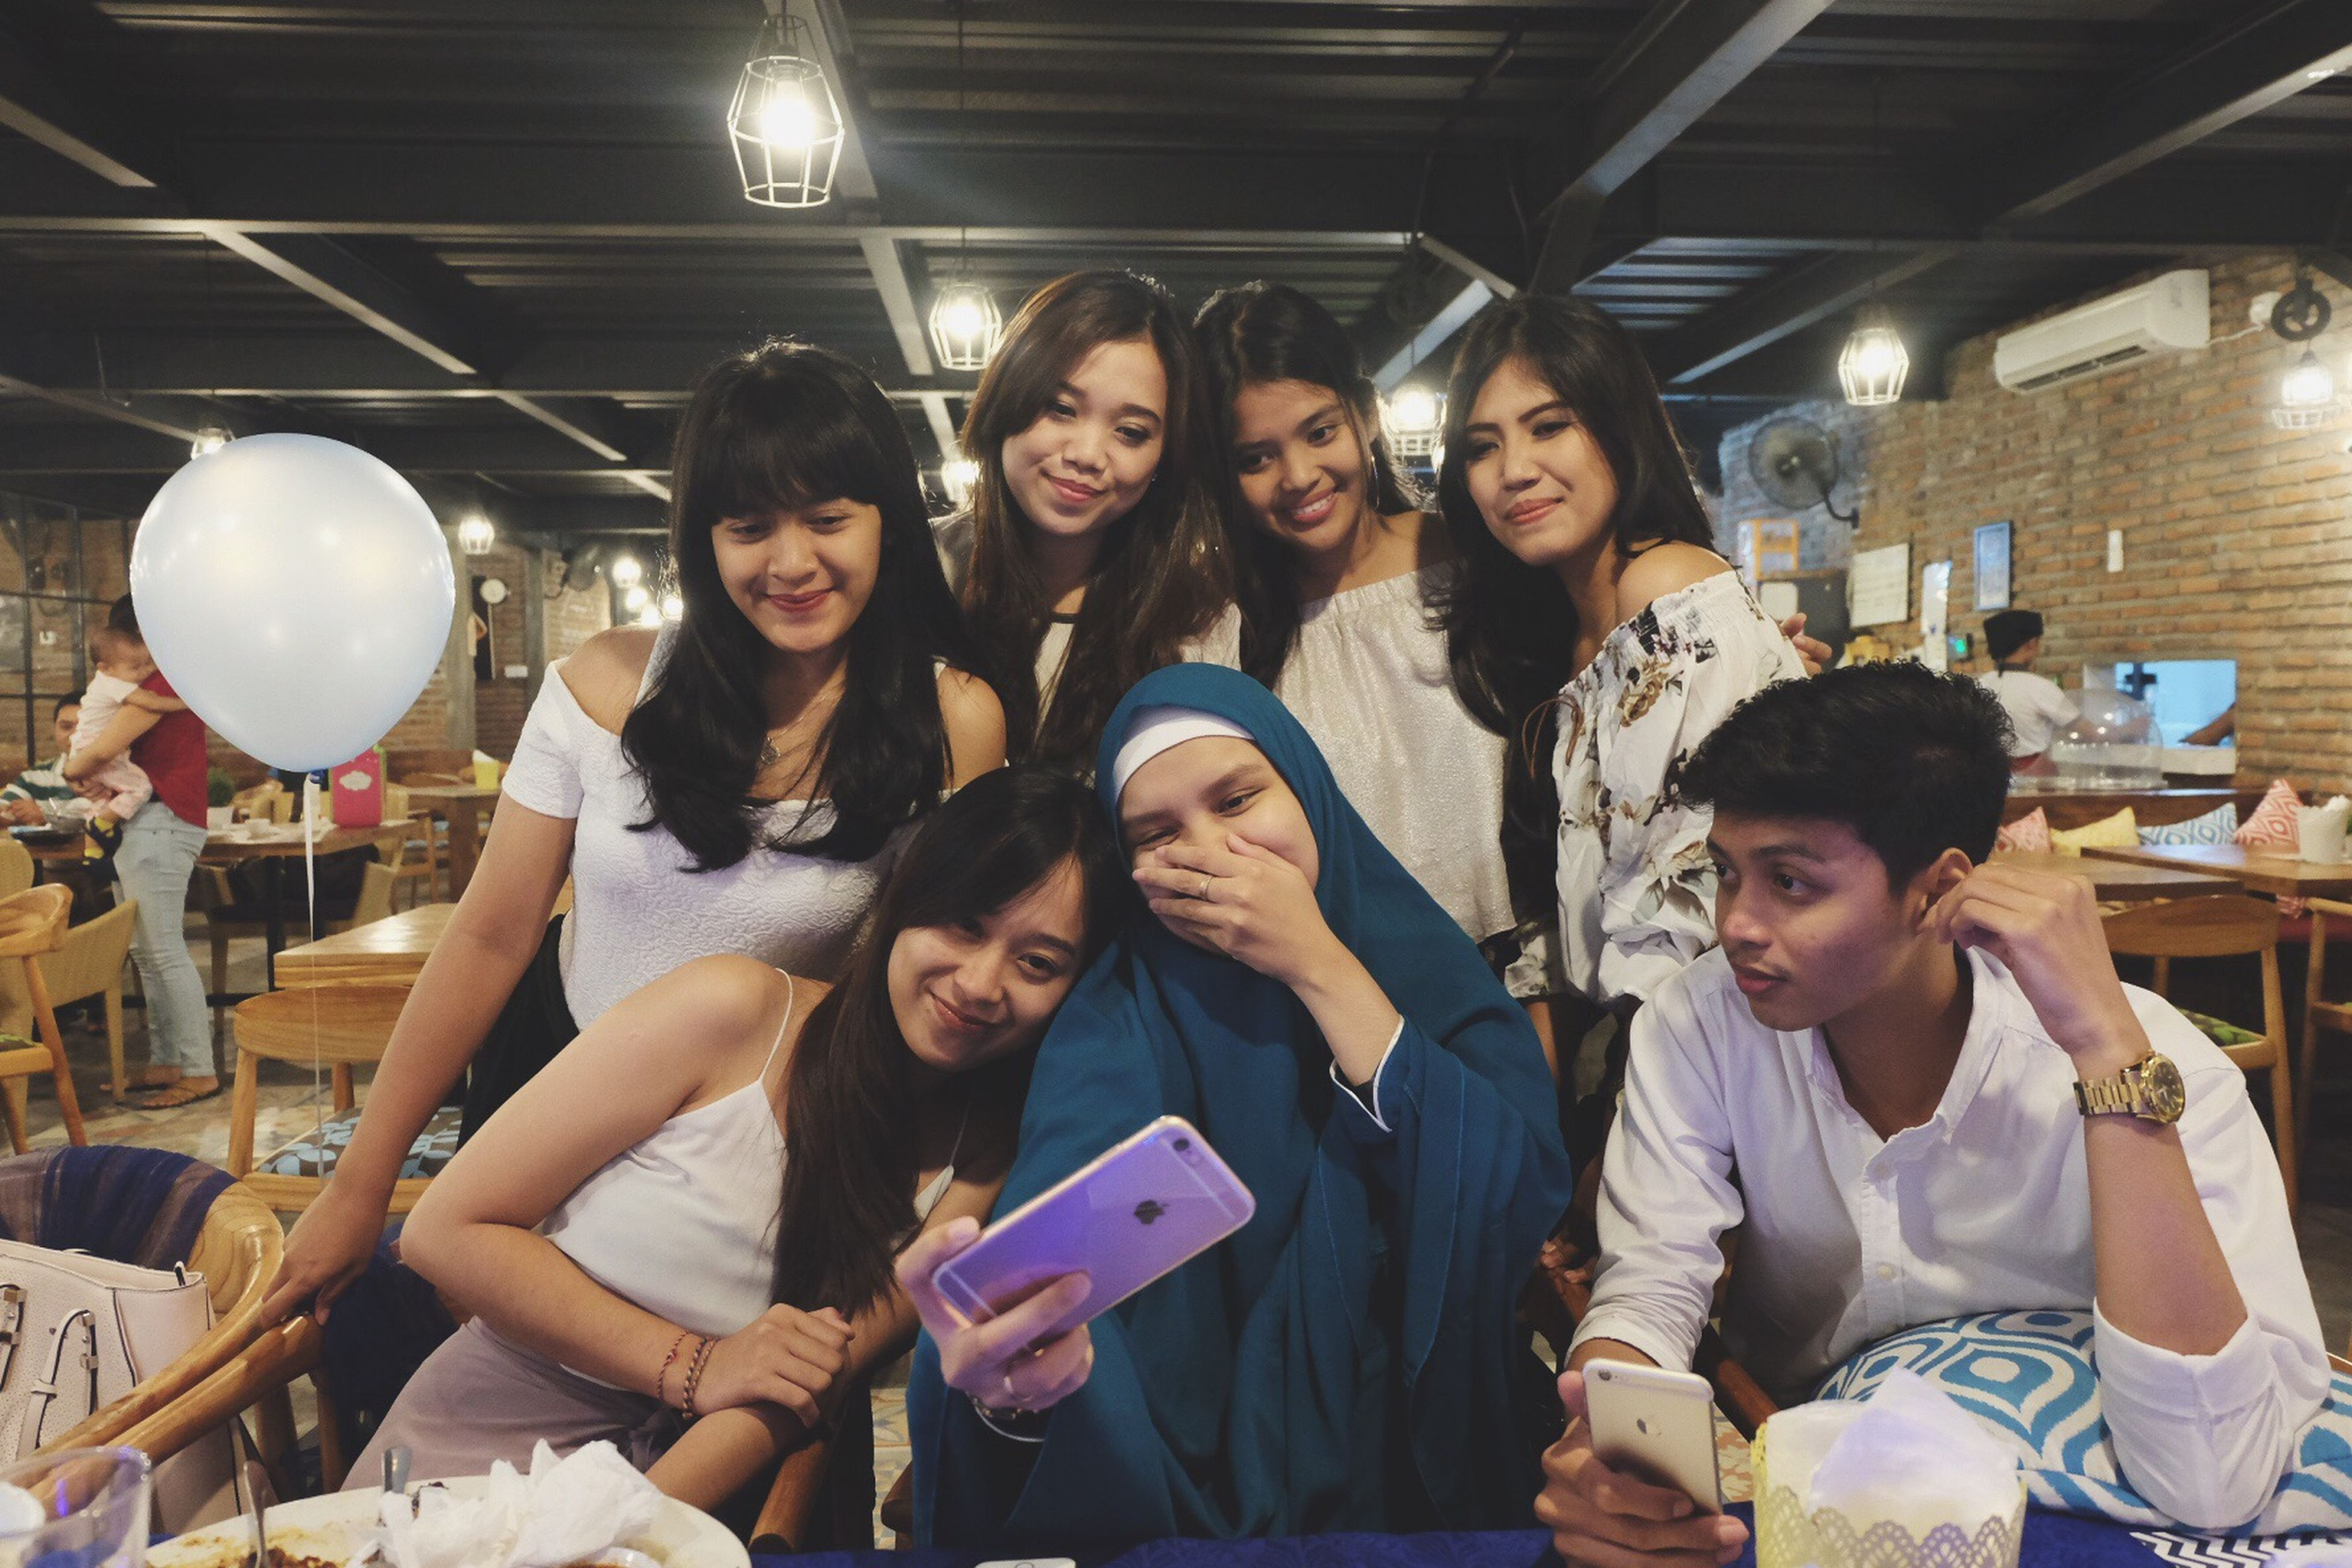 wireless technology, mobile phone, communication, portable information device, technology, smart phone, real people, looking at camera, smiling, indoors, holding, portrait, casual clothing, leisure activity, young women, happiness, togetherness, sitting, young adult, lifestyles, friendship, cheerful, selfie, photo messaging, day